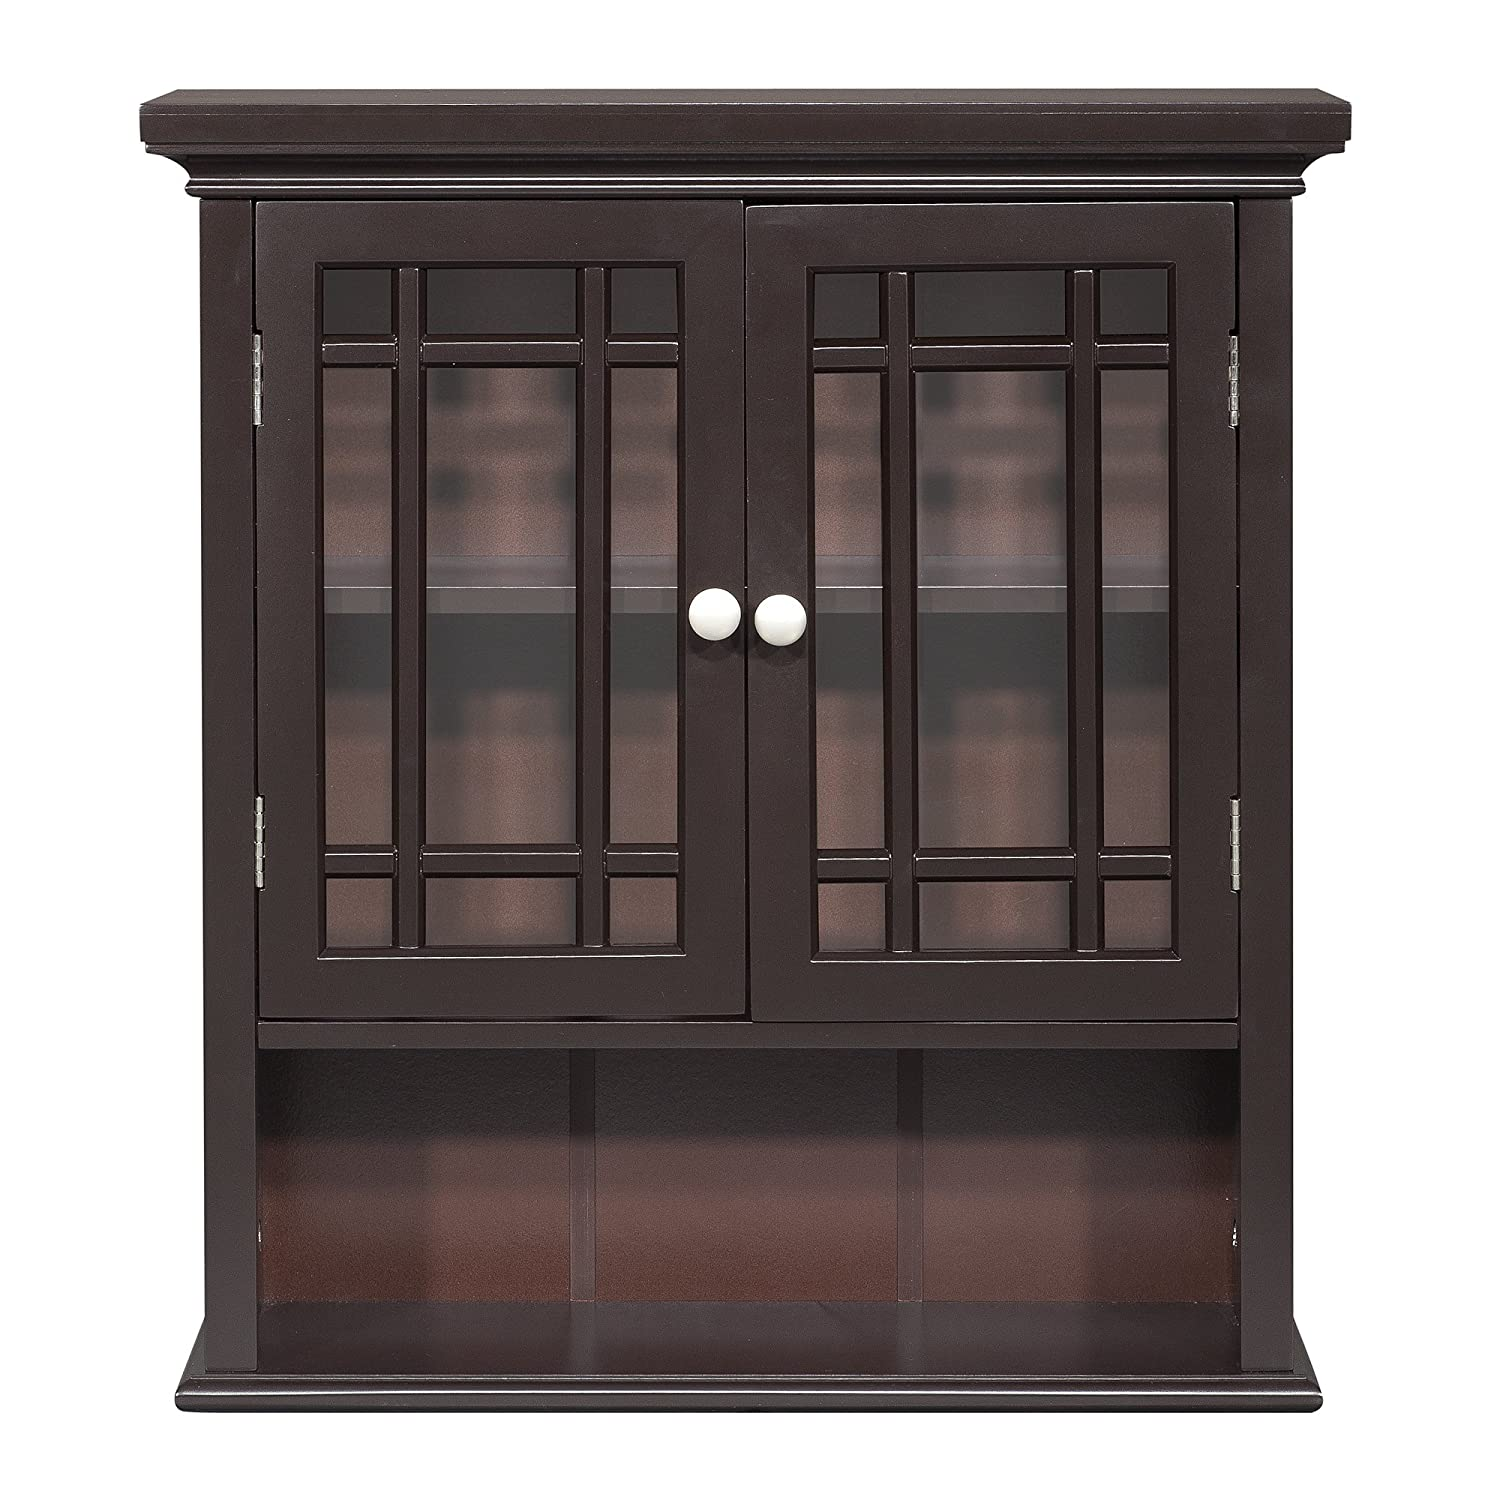 Amazon.com Elegant Home Fashion Neal Wall Cabinet with 2-Door and Shelf Kitchen u0026 Dining  sc 1 st  Amazon.com & Amazon.com: Elegant Home Fashion Neal Wall Cabinet with 2-Door and ...